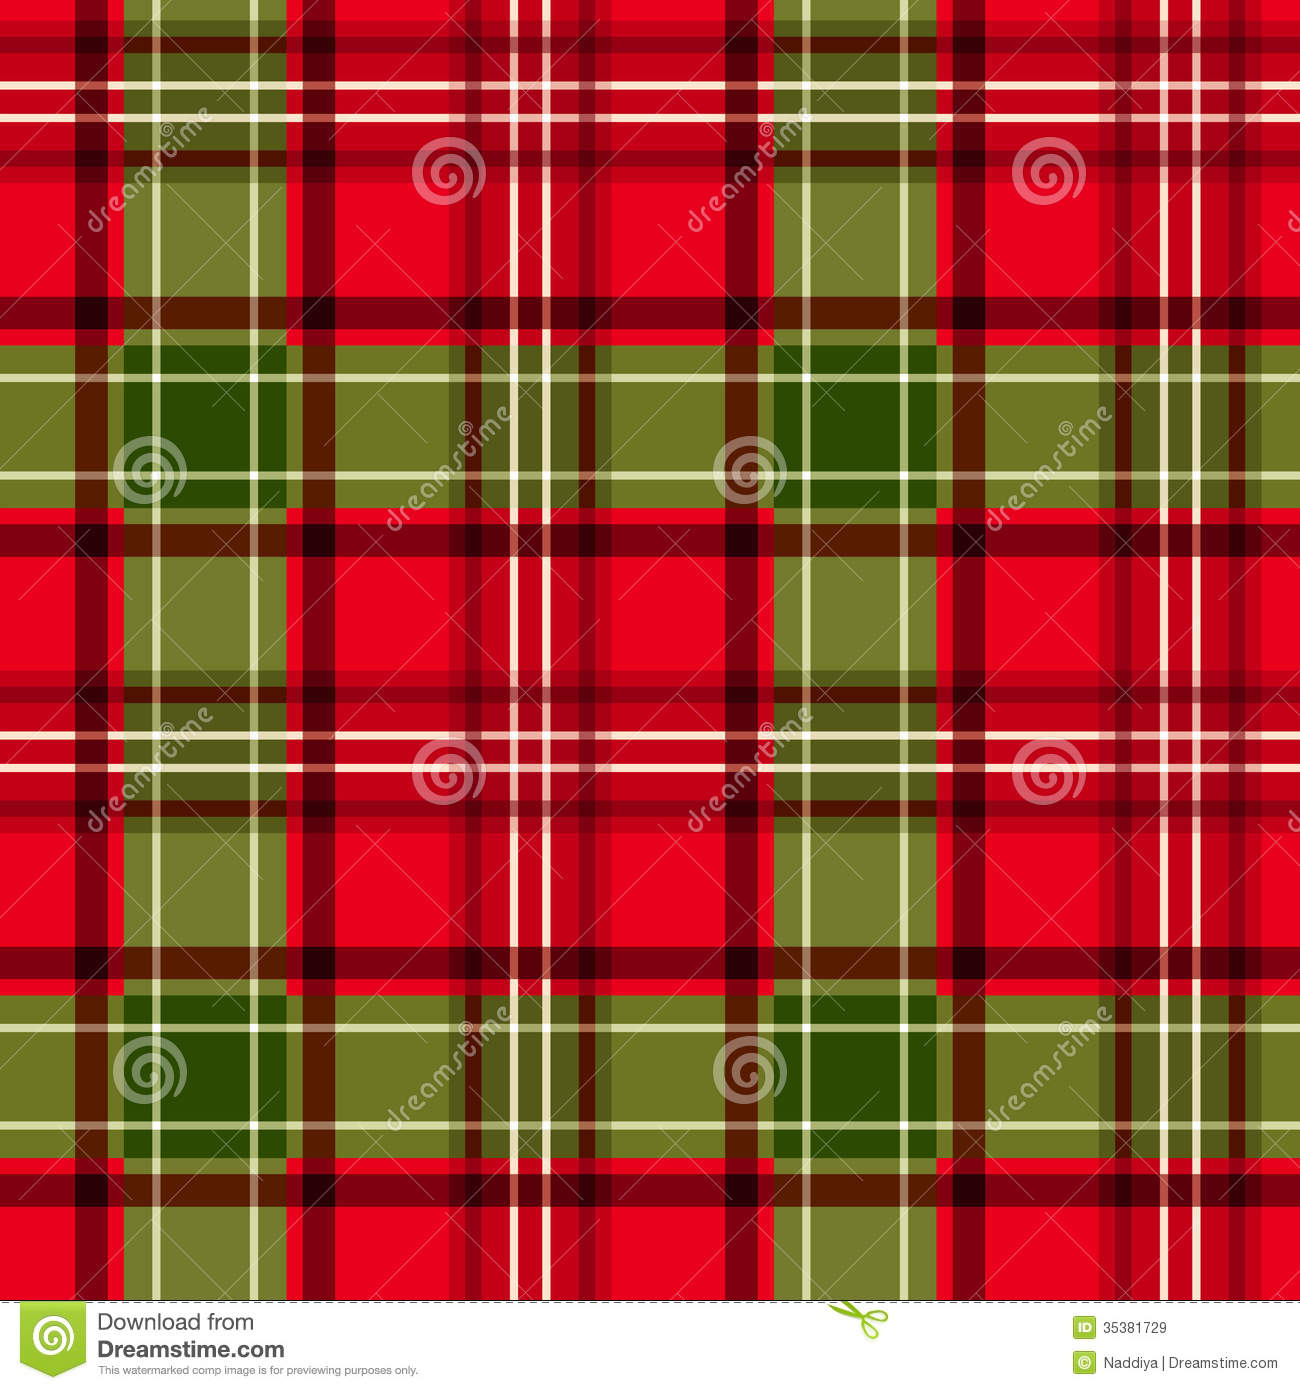 seamless background with christmas red and green tartan fabric - Christmas Plaid Fabric